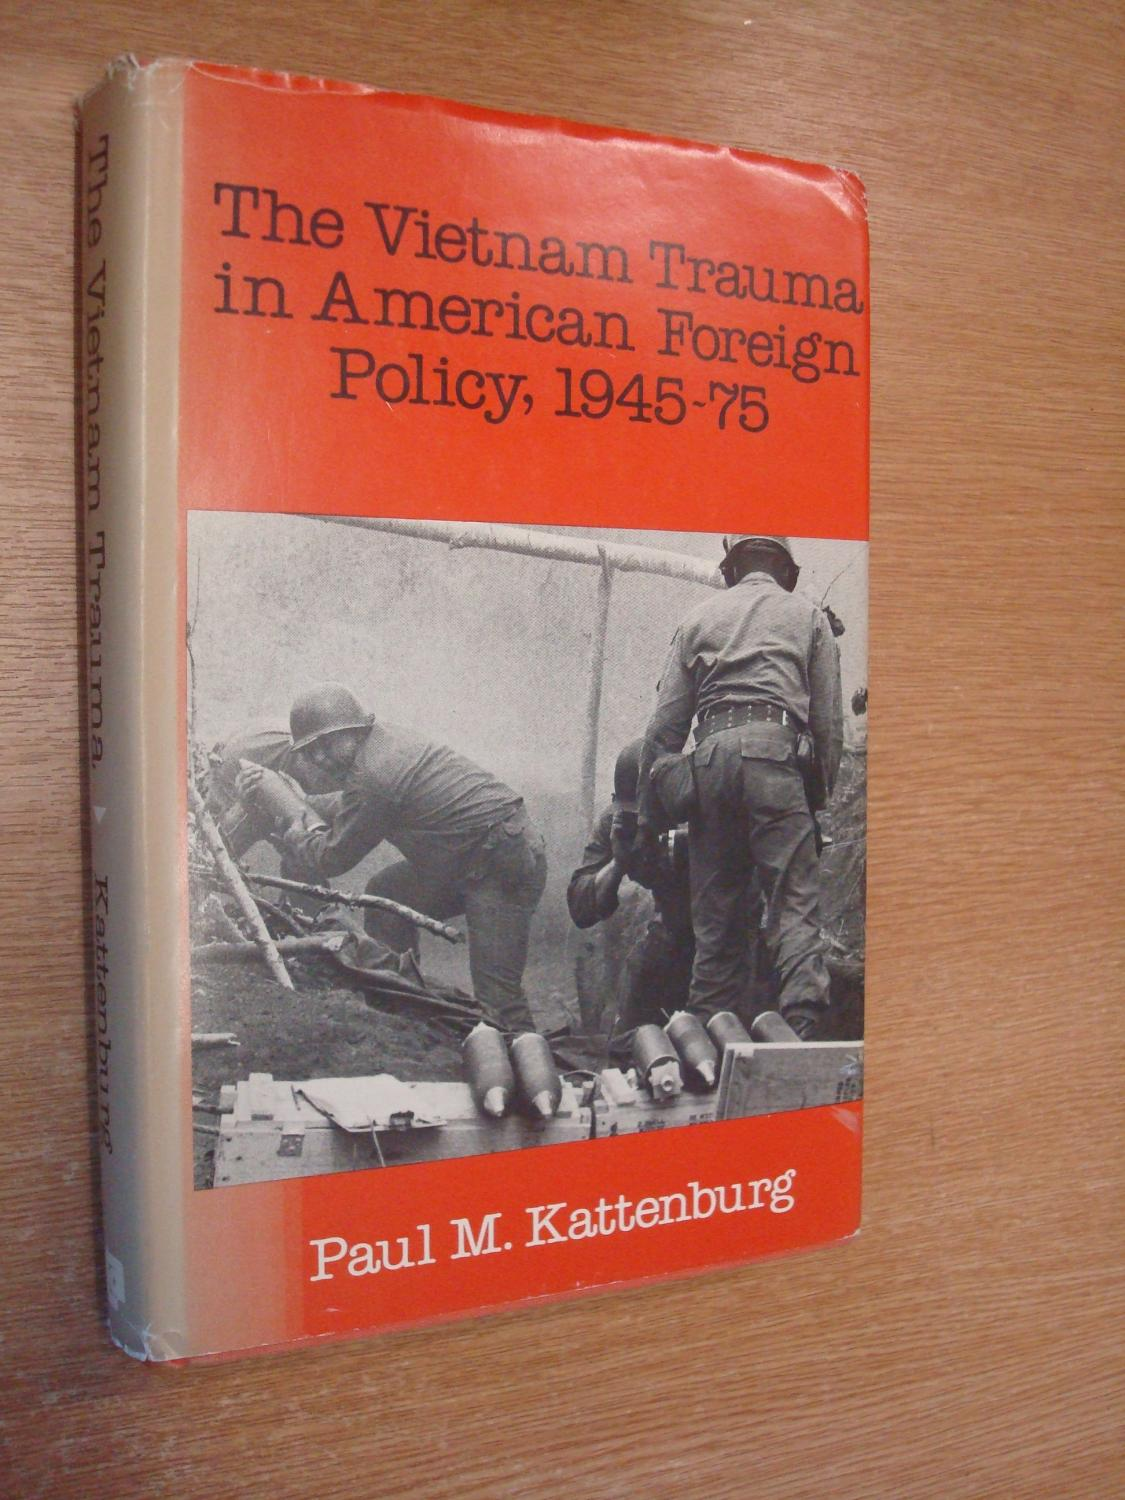 The Vietnam Trauma in American Foreign Policy: 1945-75 - Kattenburg, Paul M.